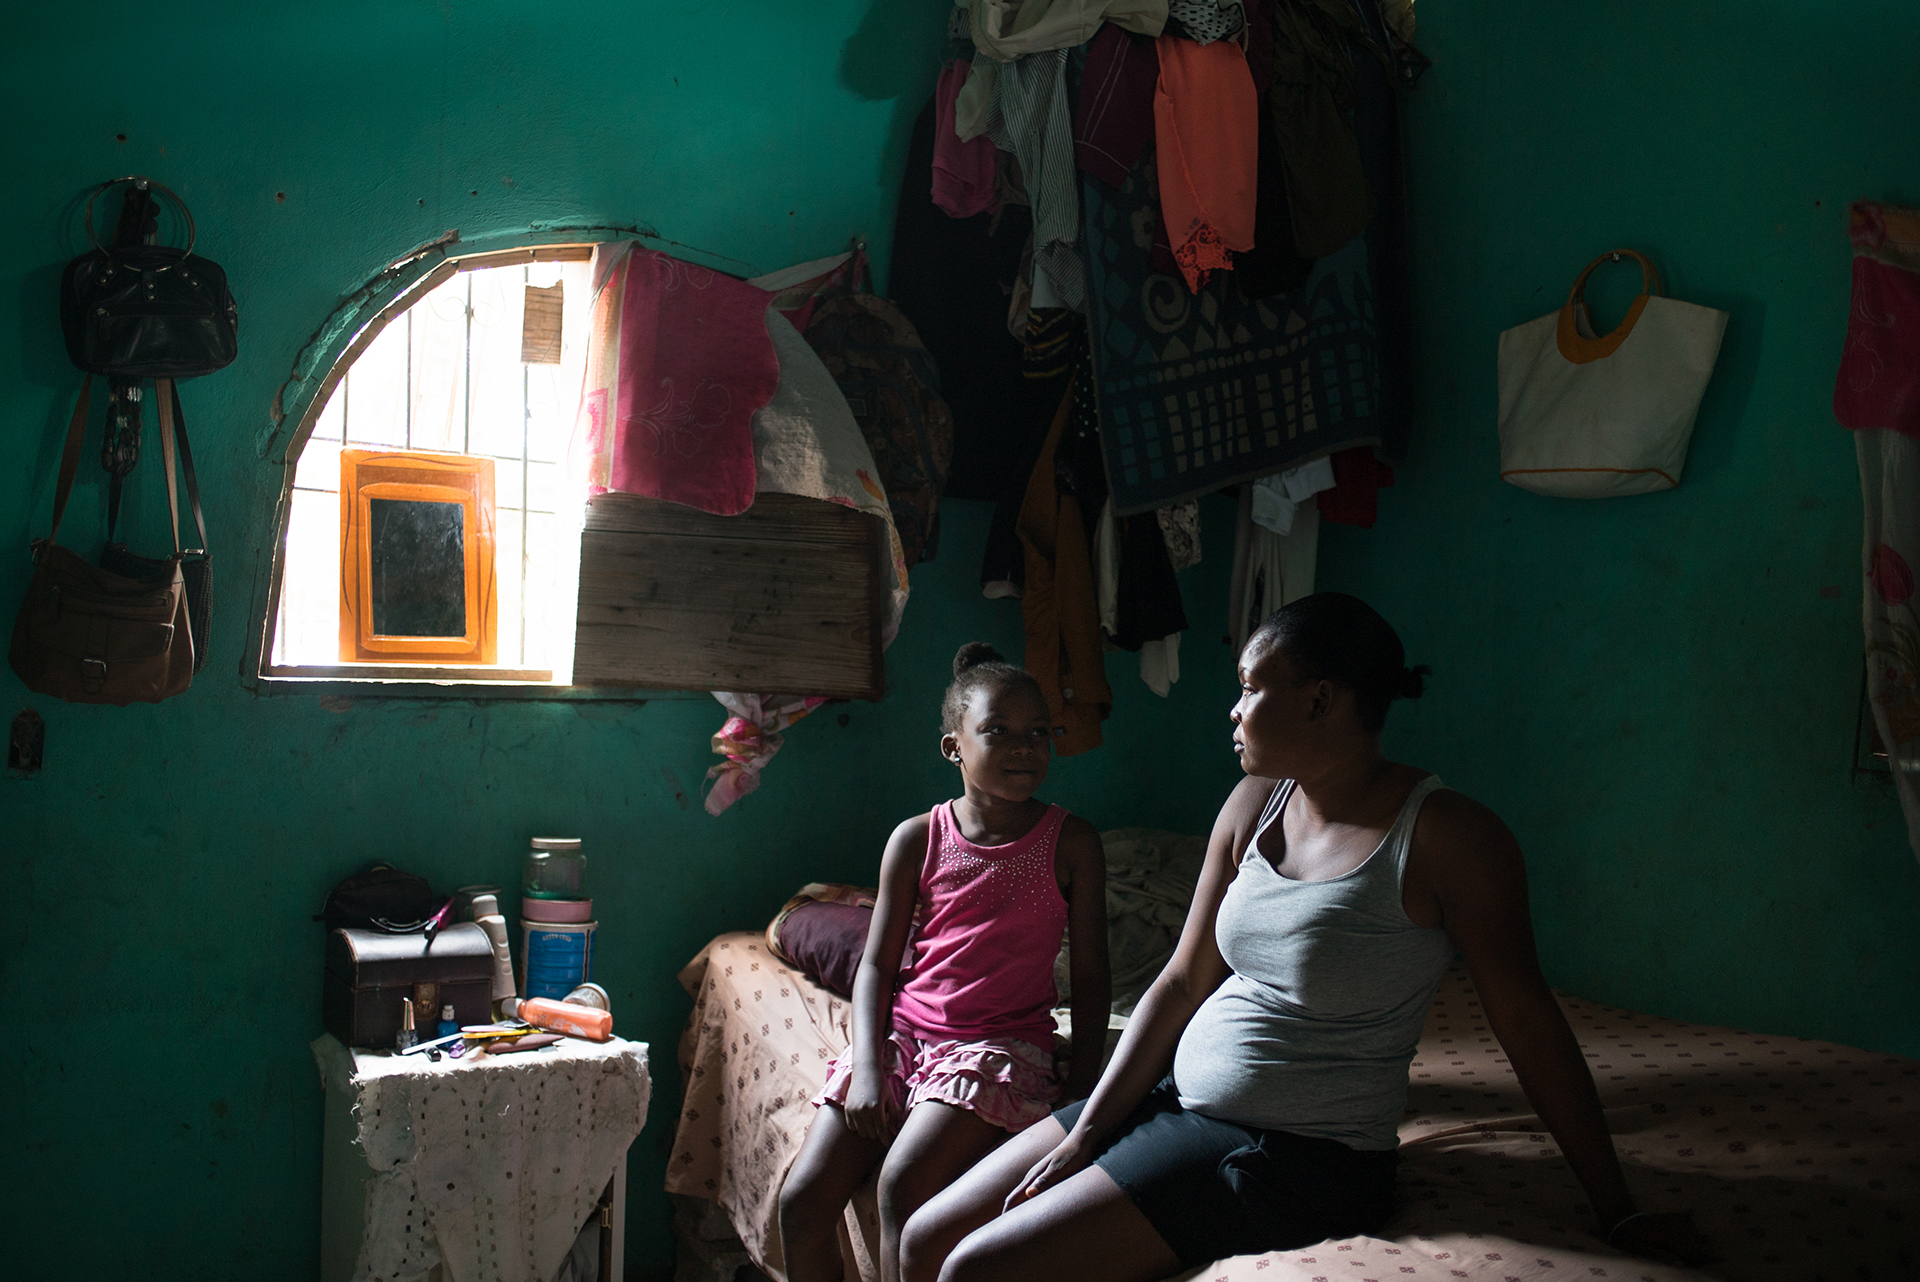 A mother and daughter sit on a bed as light from the window falls on them